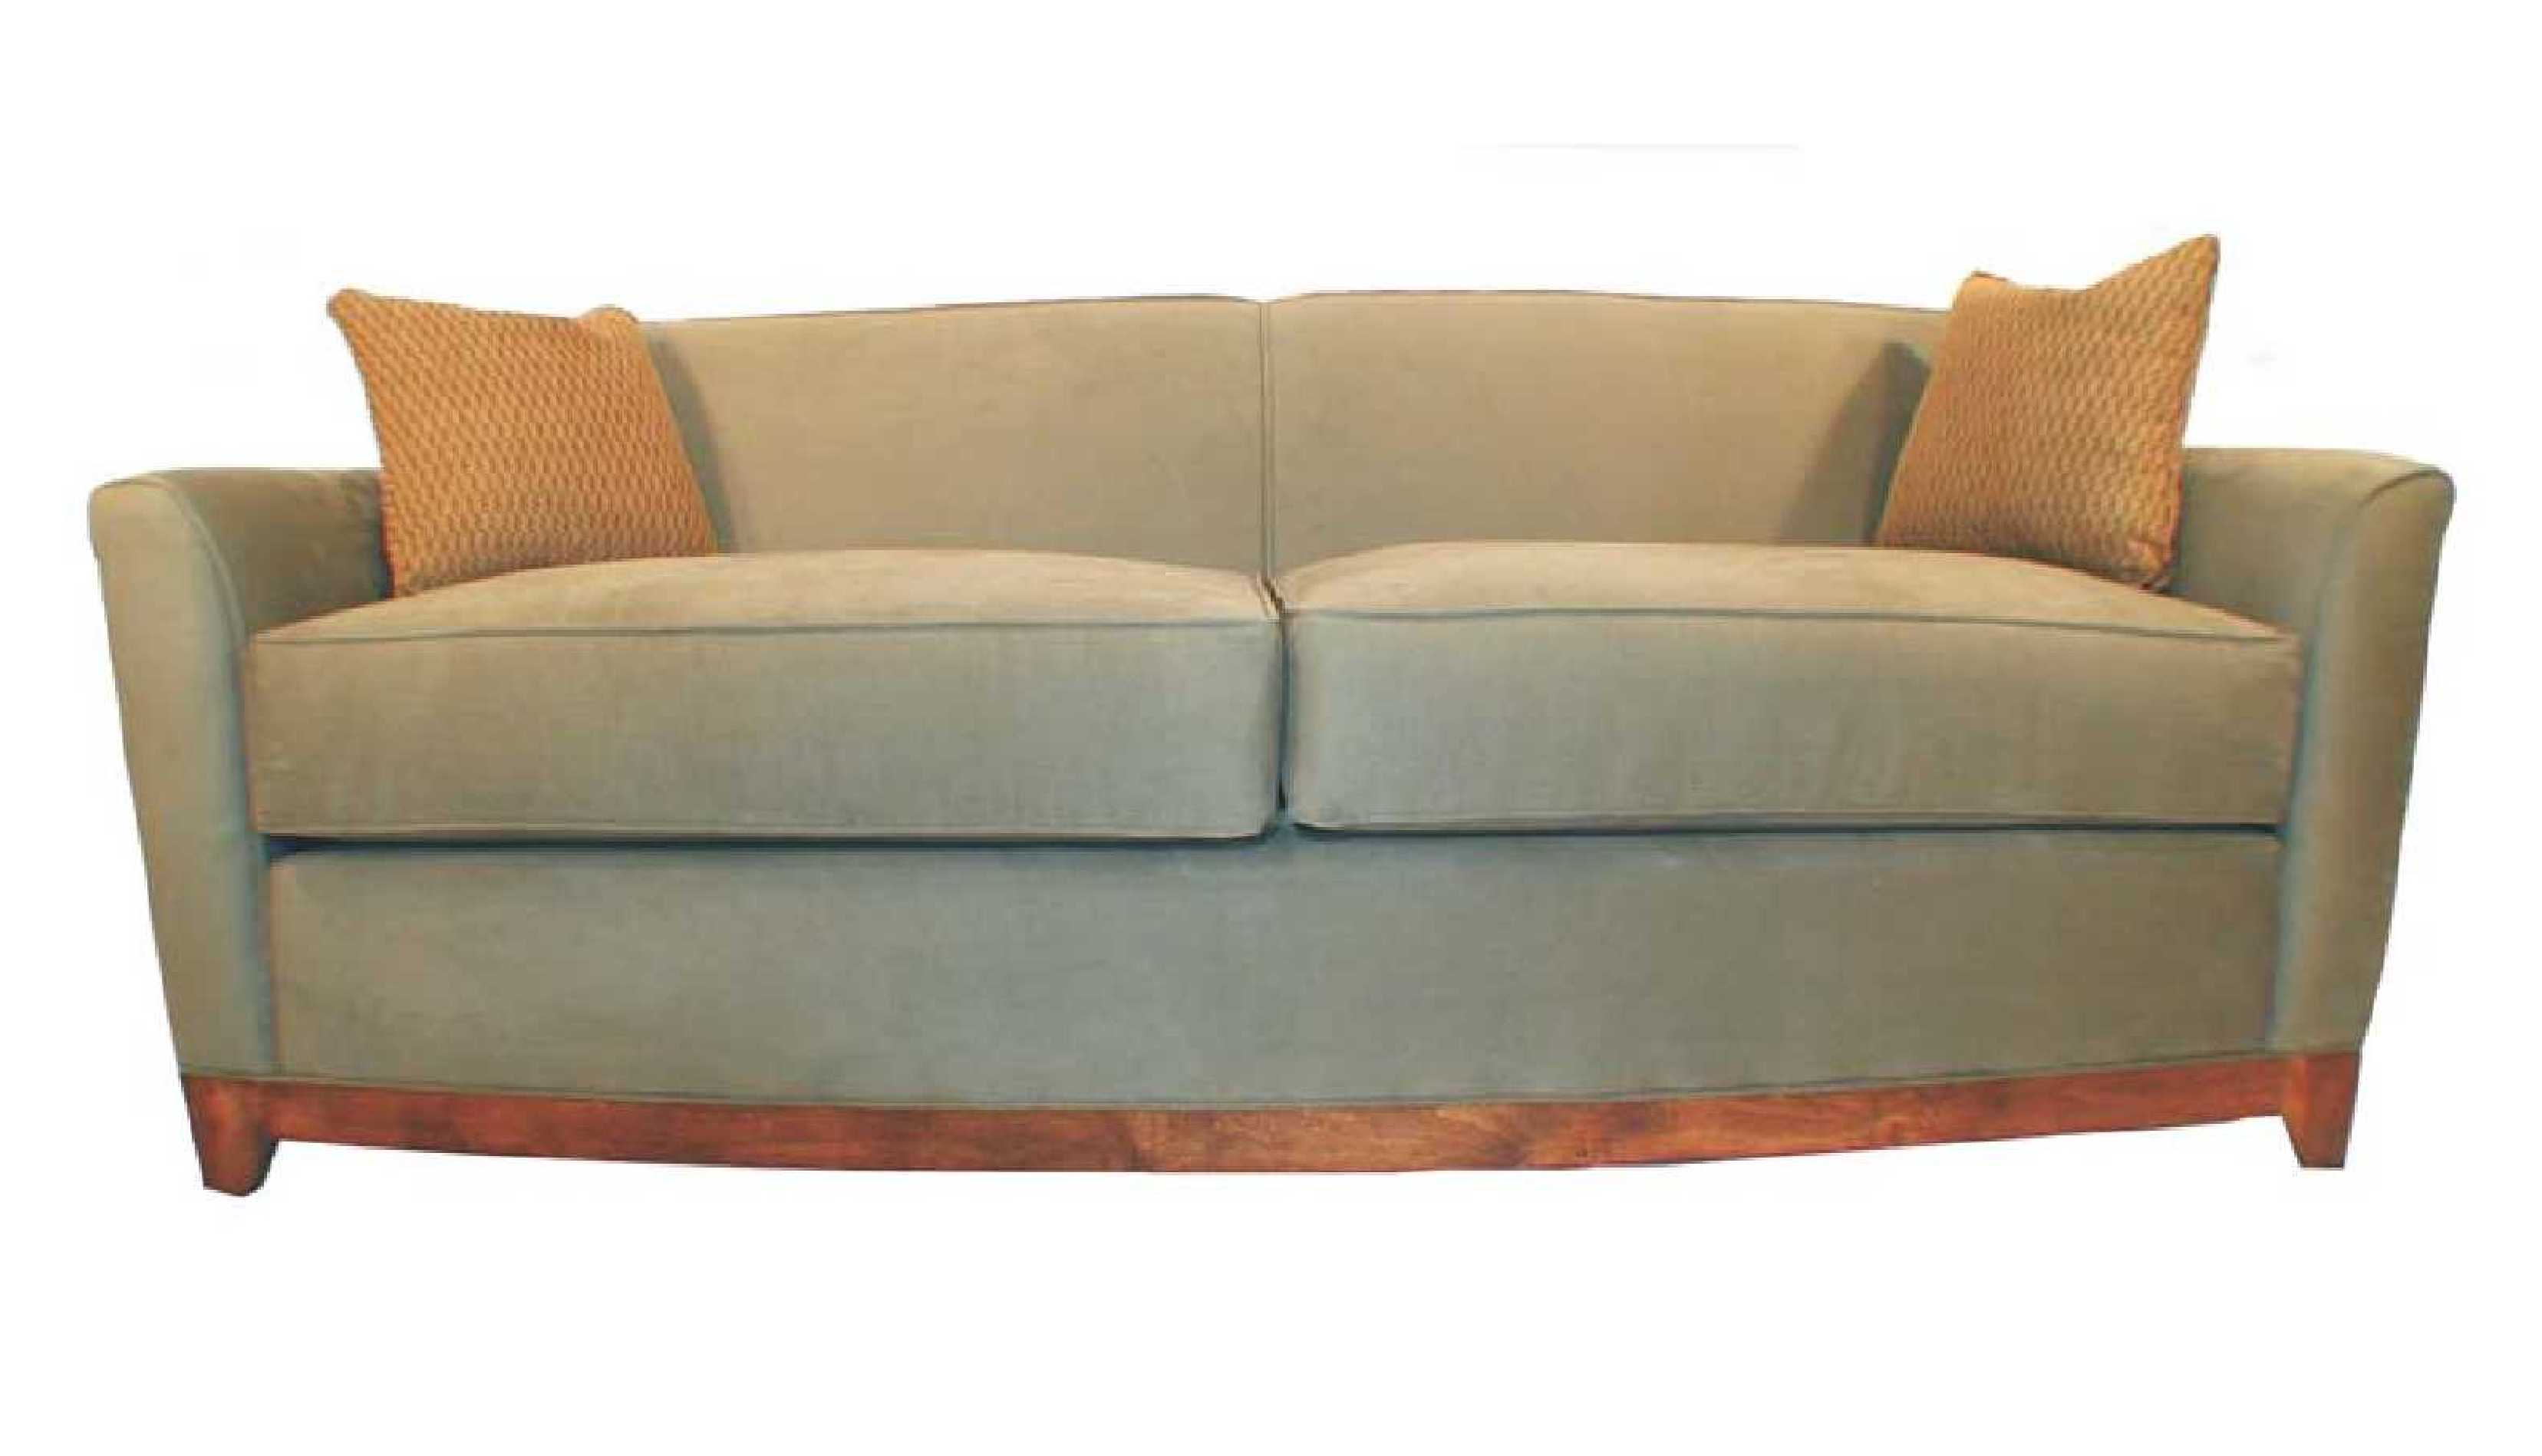 La cienega sofa factory for Sofa company